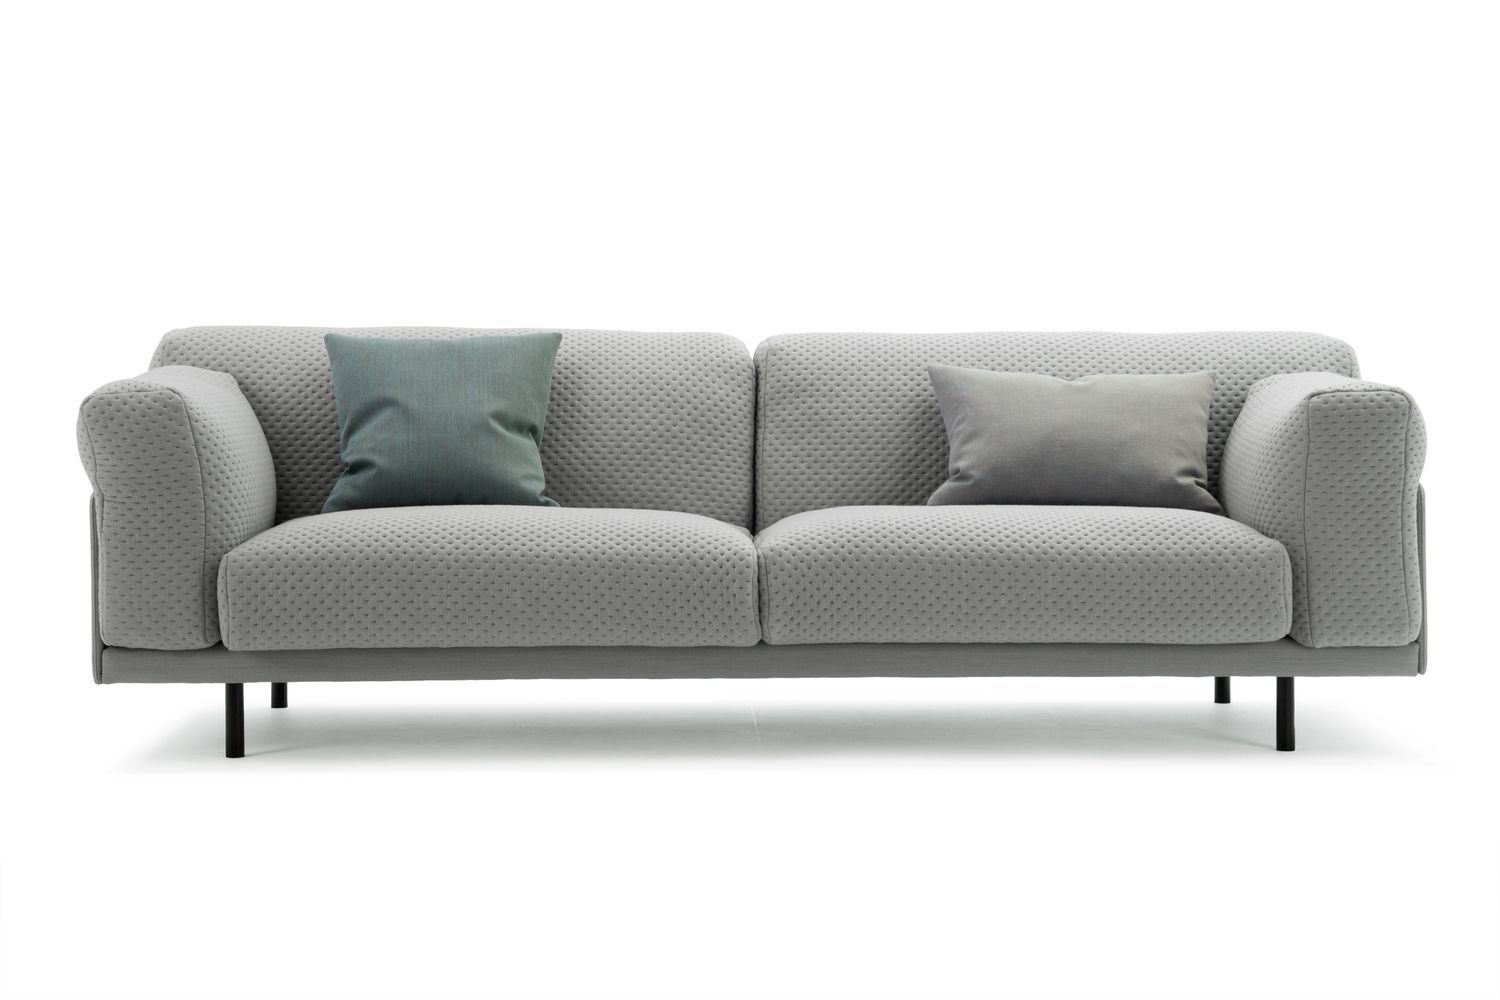 by plaza thumbnail design associates sofa furniture comfort bendtsen niels crop